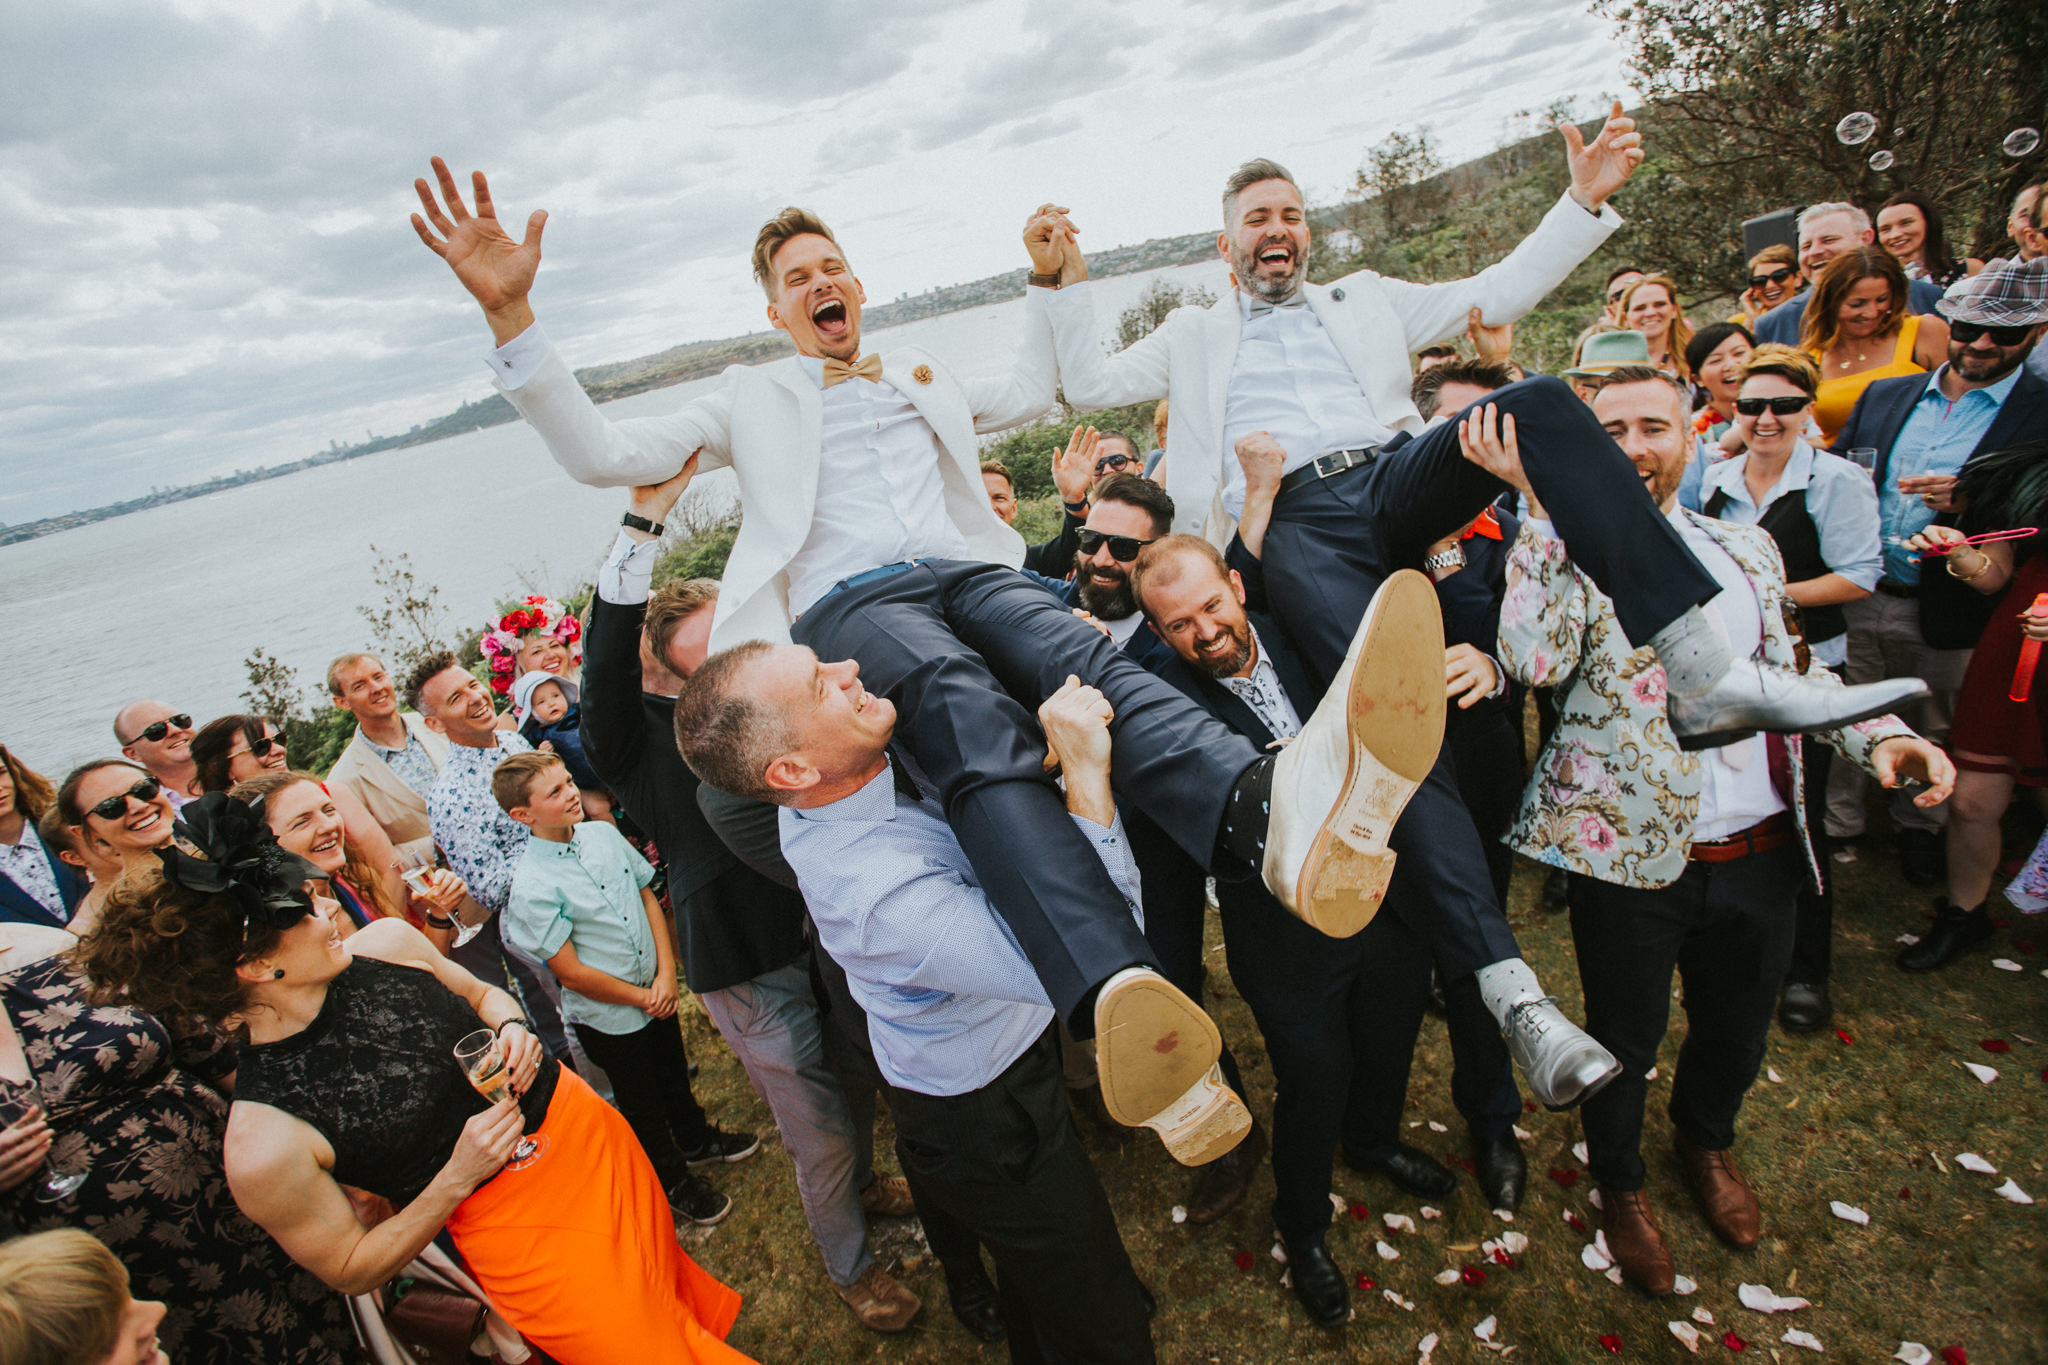 A wedding at Qstation with two grooms being lifted by their friends. Everyone's smiling.